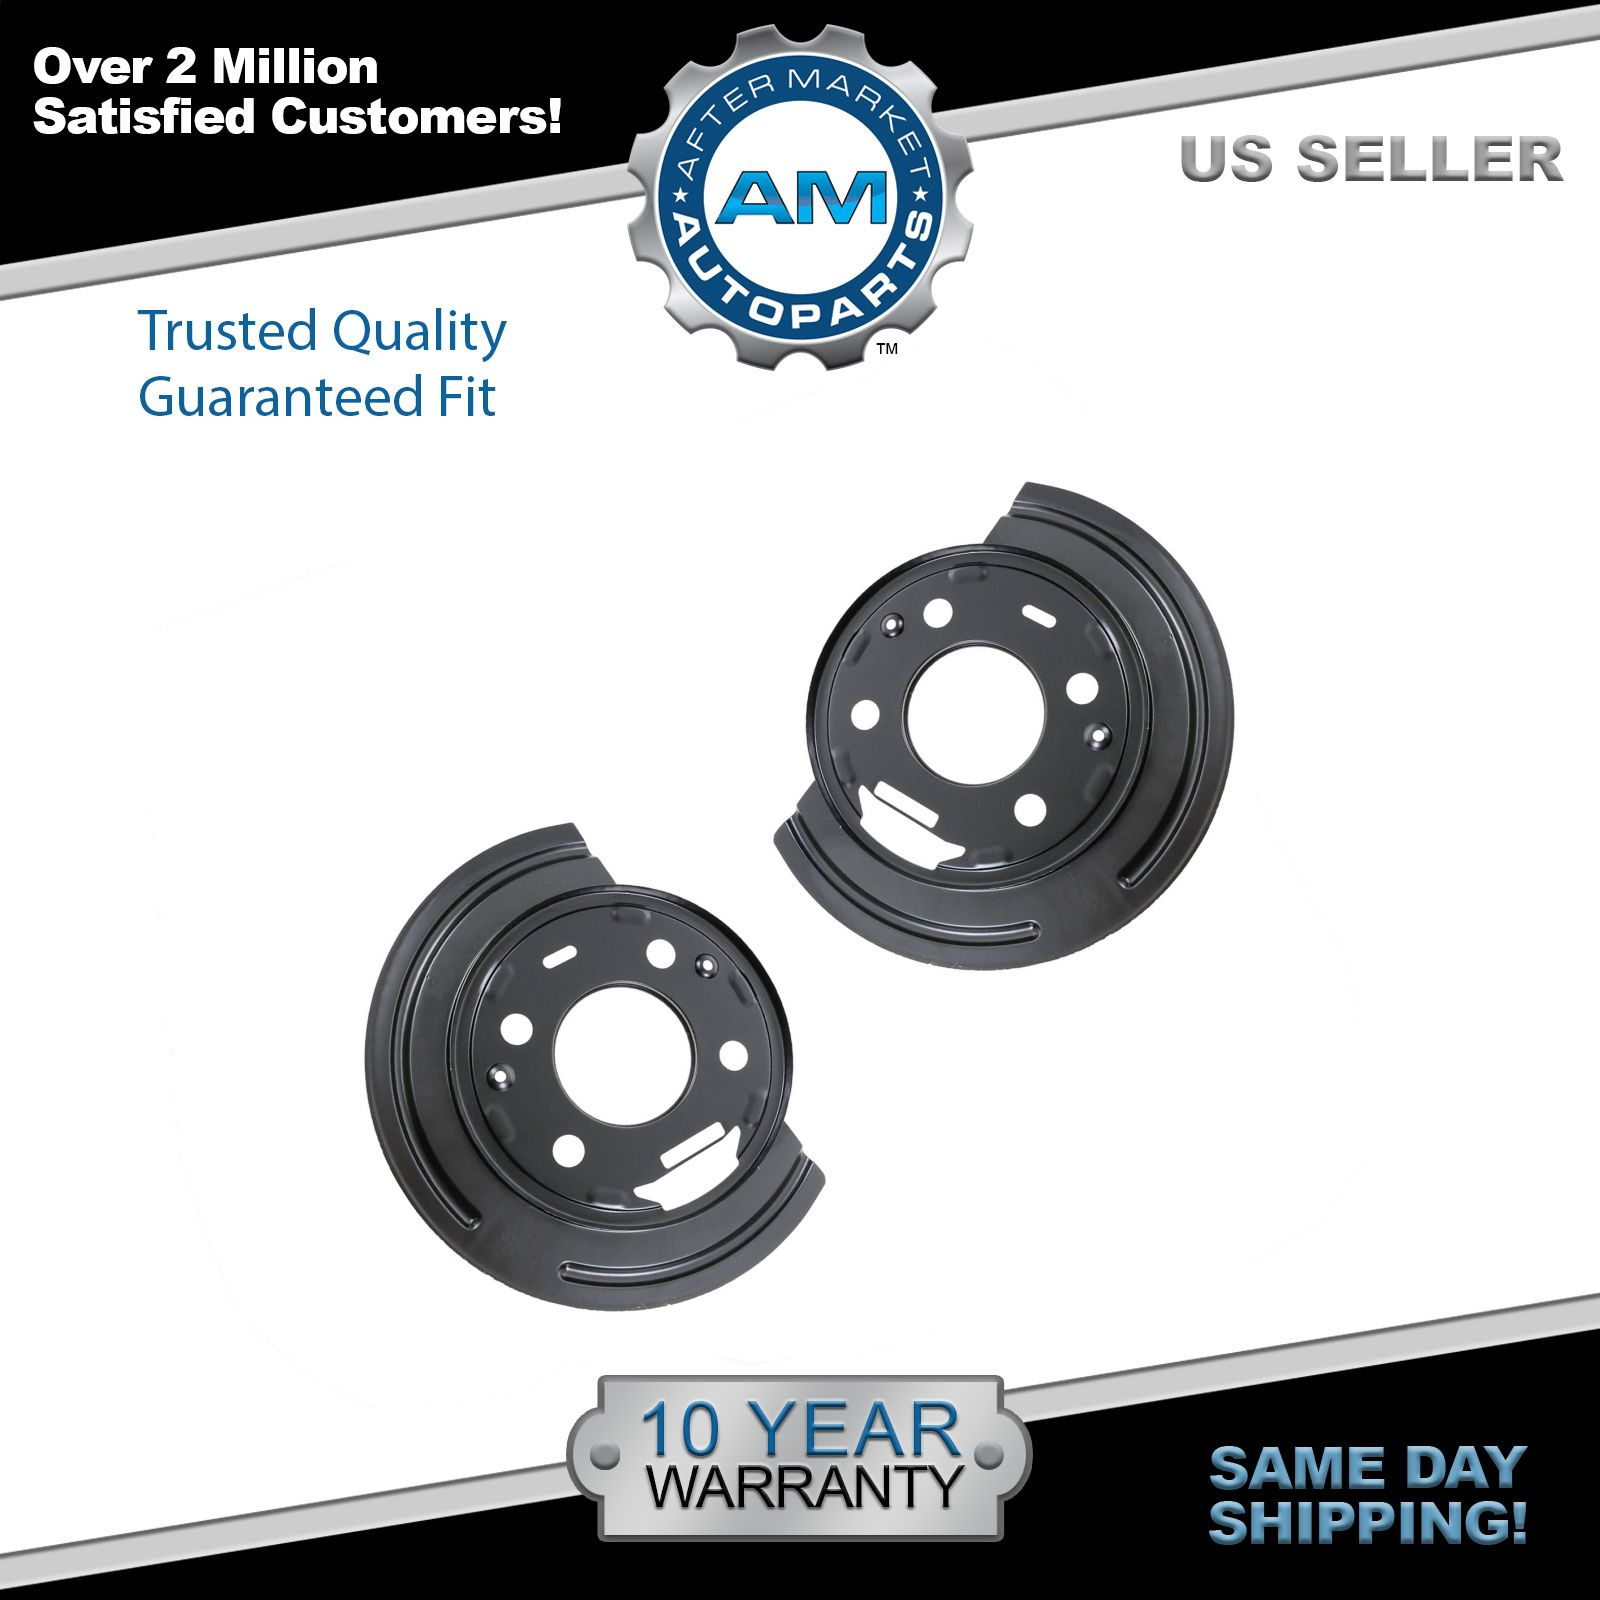 Chevy Truck Brake Backing Plate : Dorman brake drum backing plate panel mount for chevy gmc